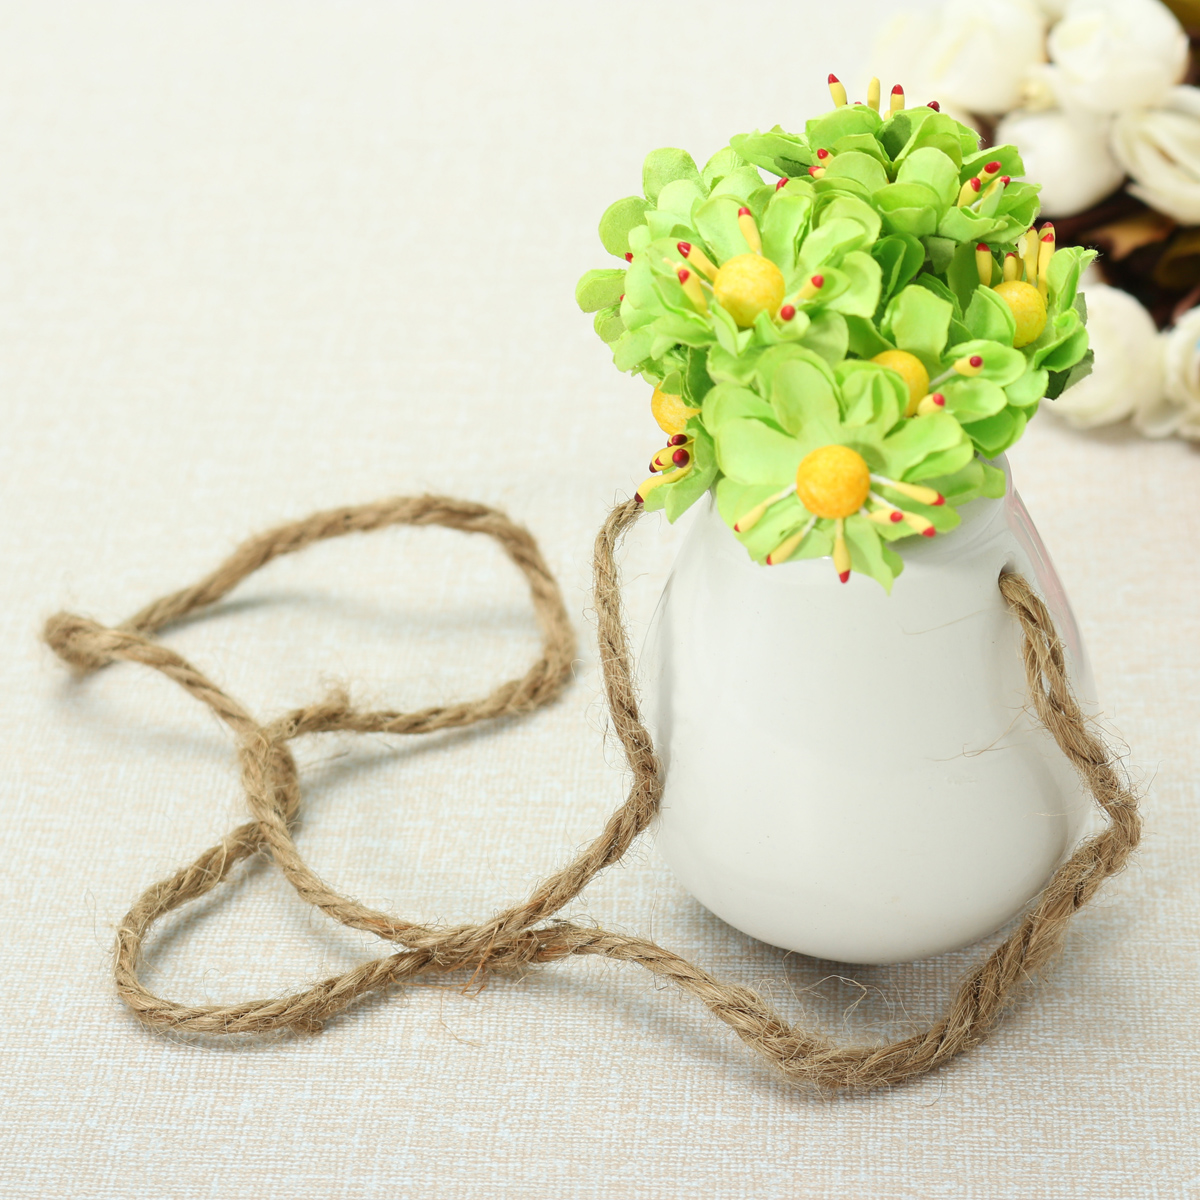 Garden White Ceramic Hanging Planter Flower Pot Bottle Vase Twines Home Decor